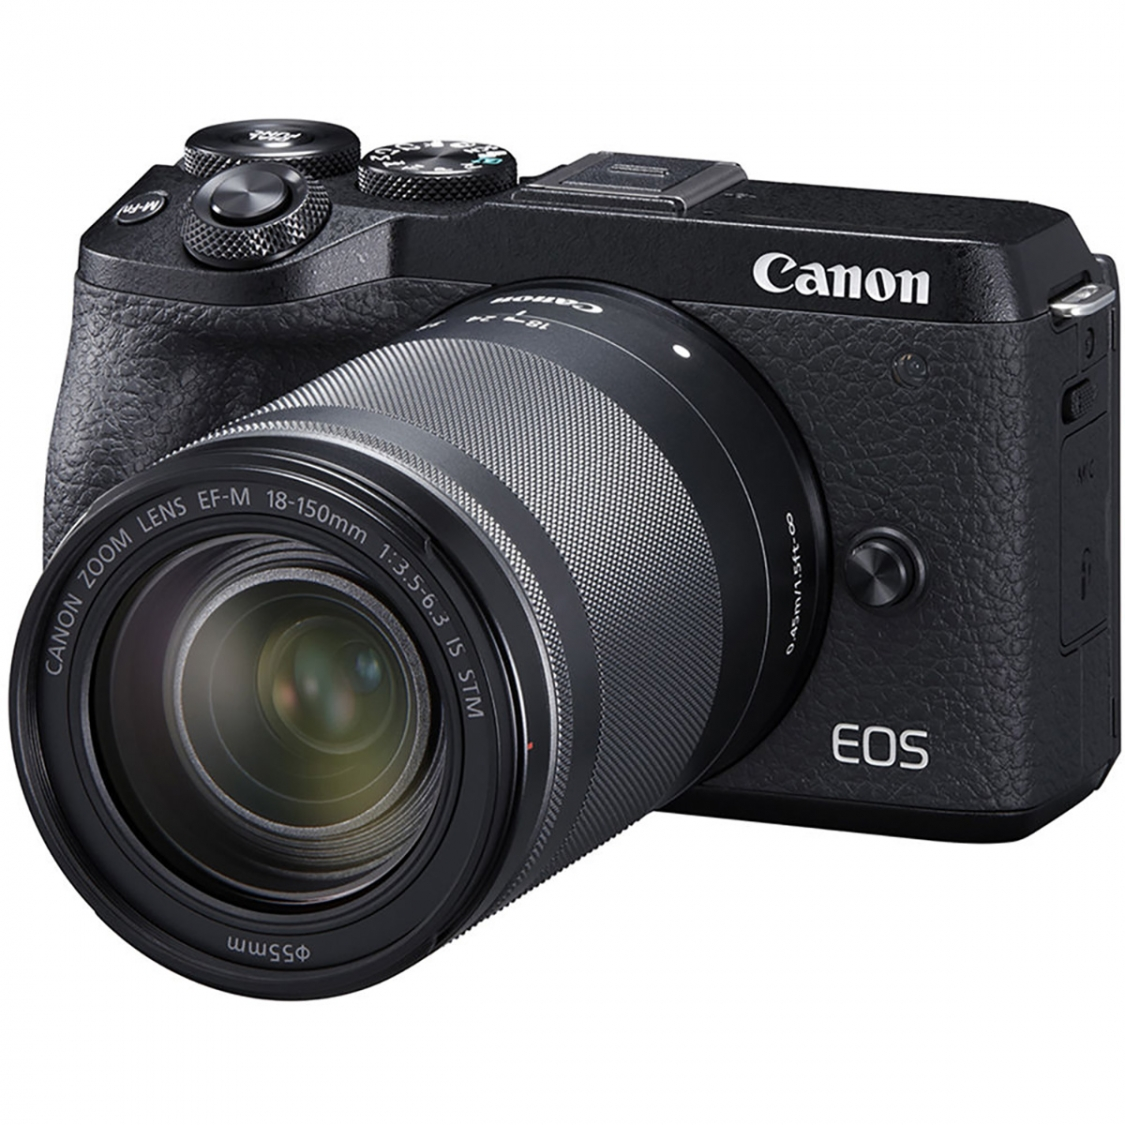 Canon EOS M6 Mark II with 18-150mm Lens and EVF